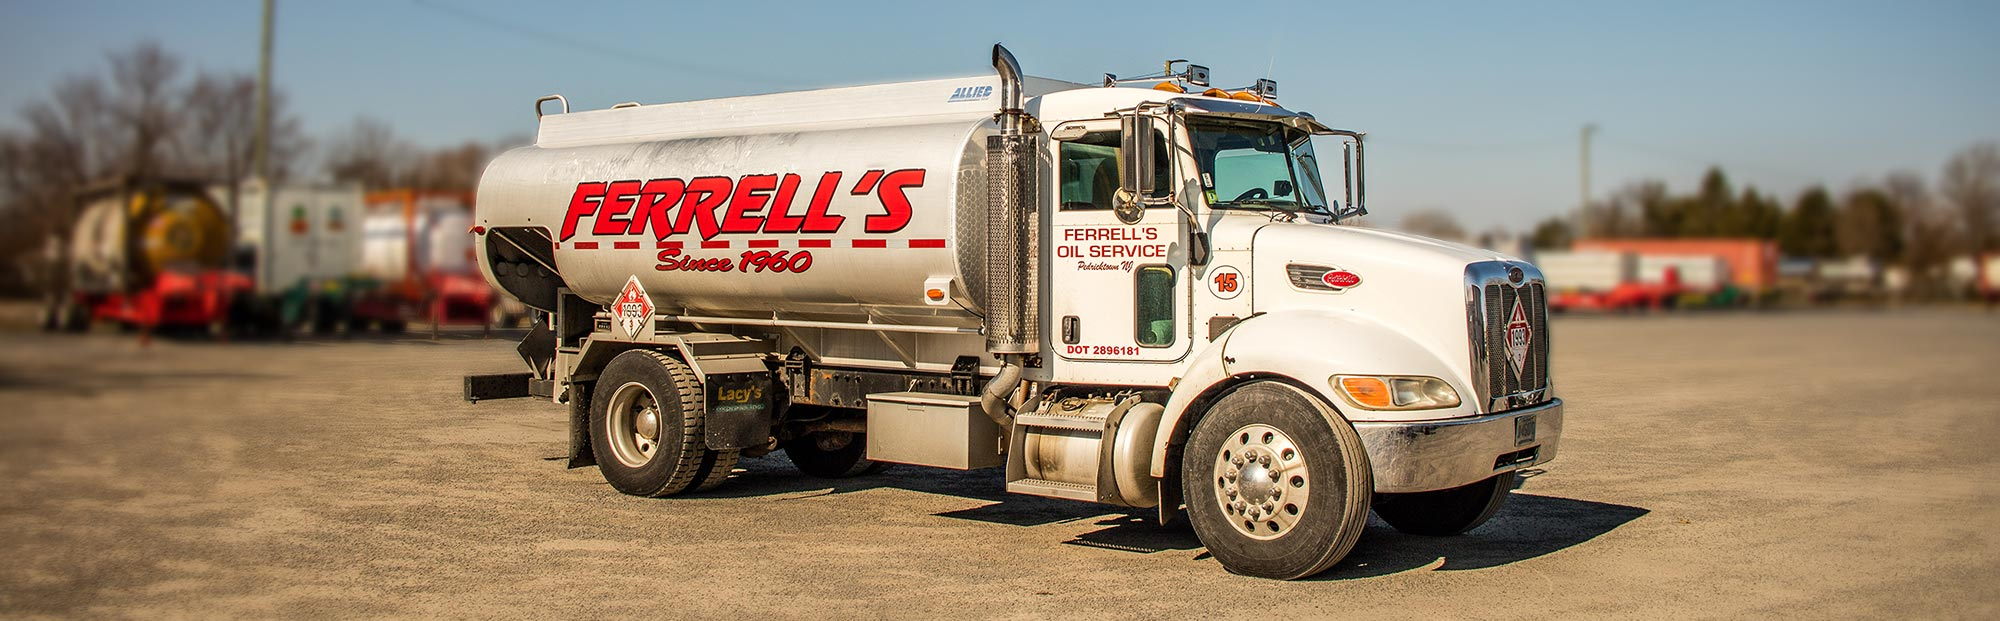 Ferrell Oil Delivery Truck